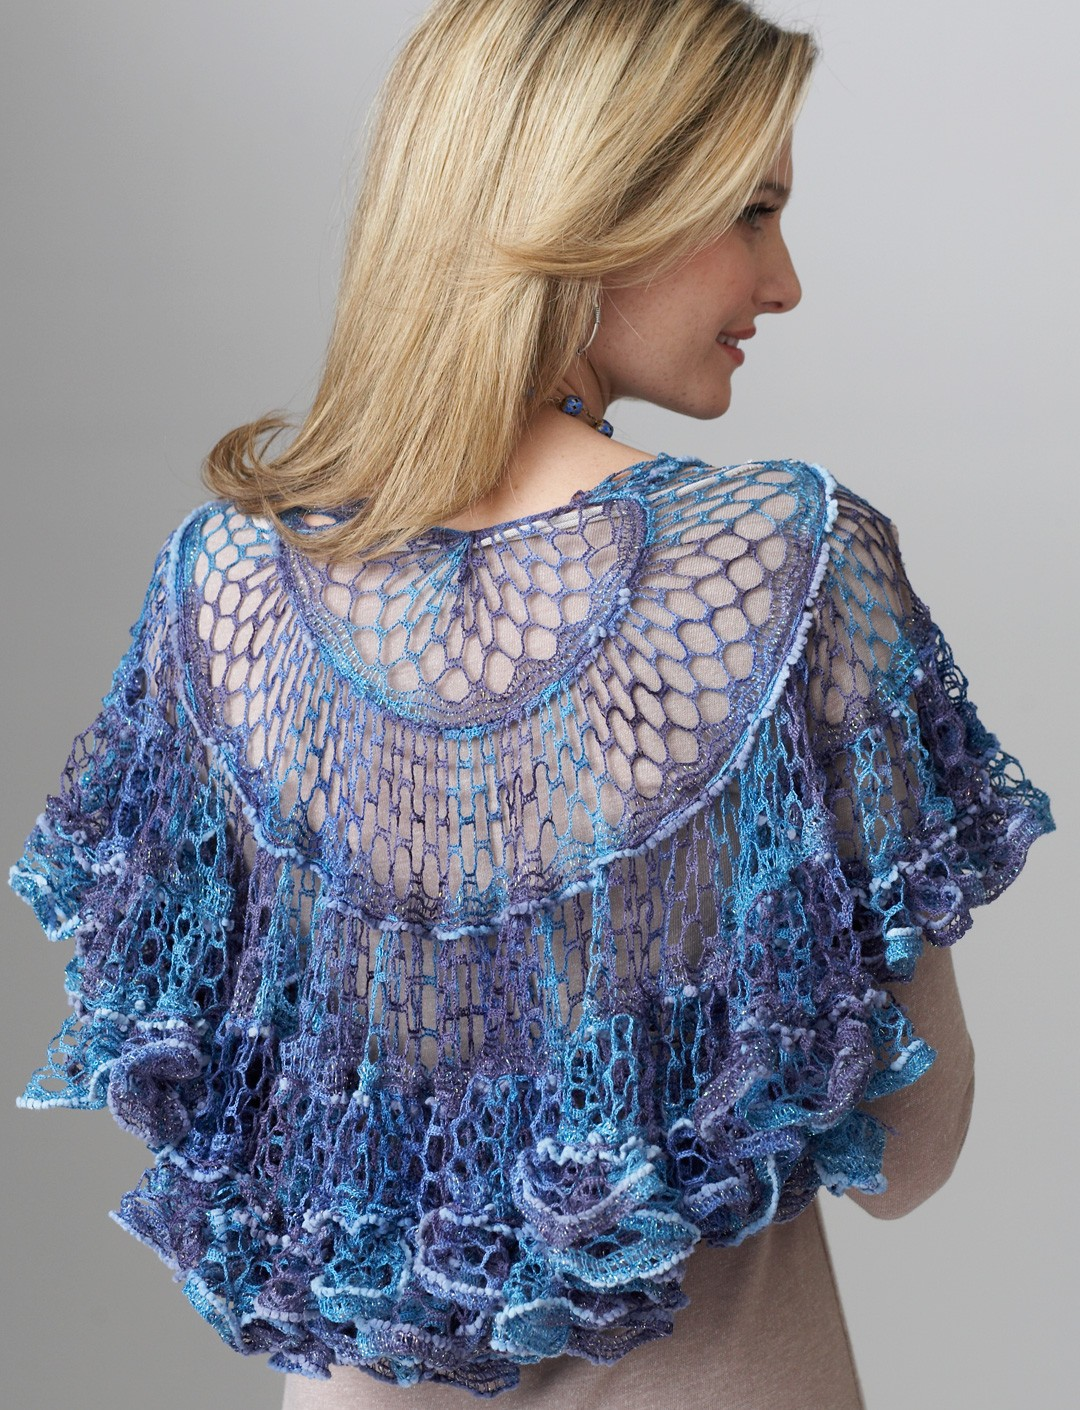 Crochet Shawl Patterns With Bulky Yarn : Shawl Yarnspirations